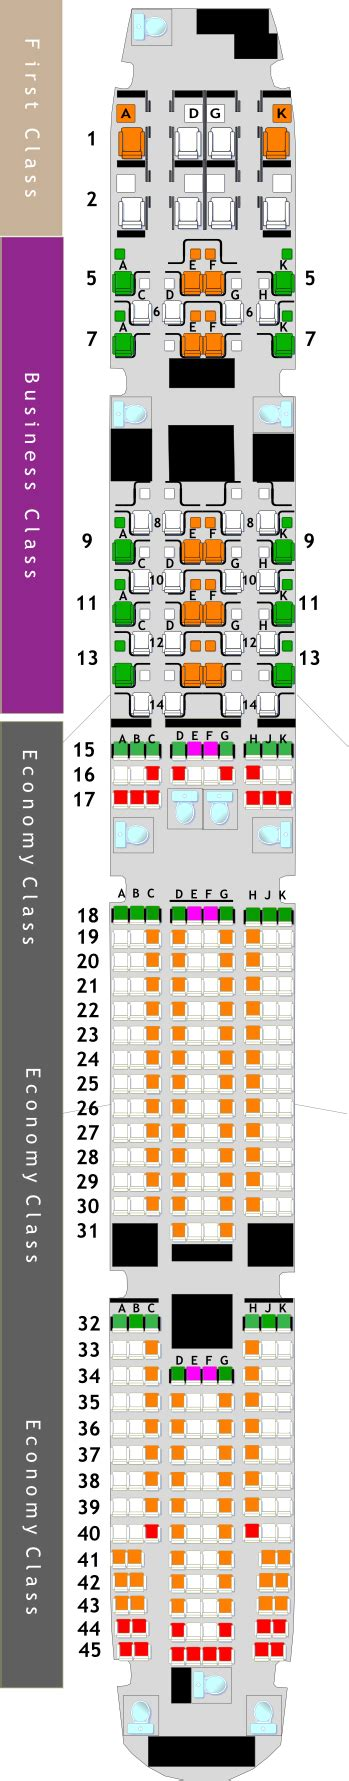 plan siege boeing 777 300er seating plan for boeing 777 300er jet etihad